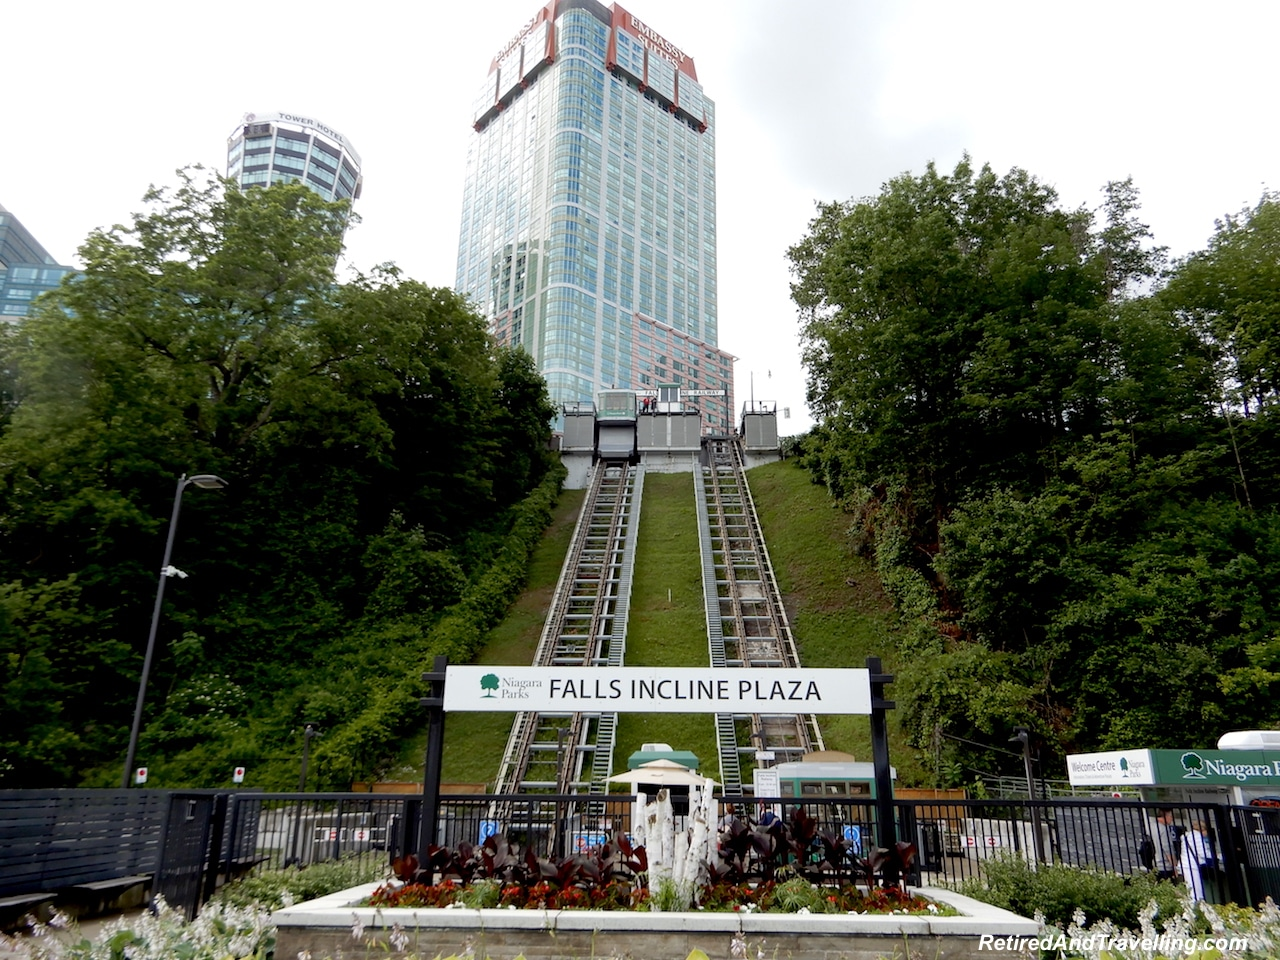 Funicular Incline Railway - Things To Do In Niagara Falls.jpg